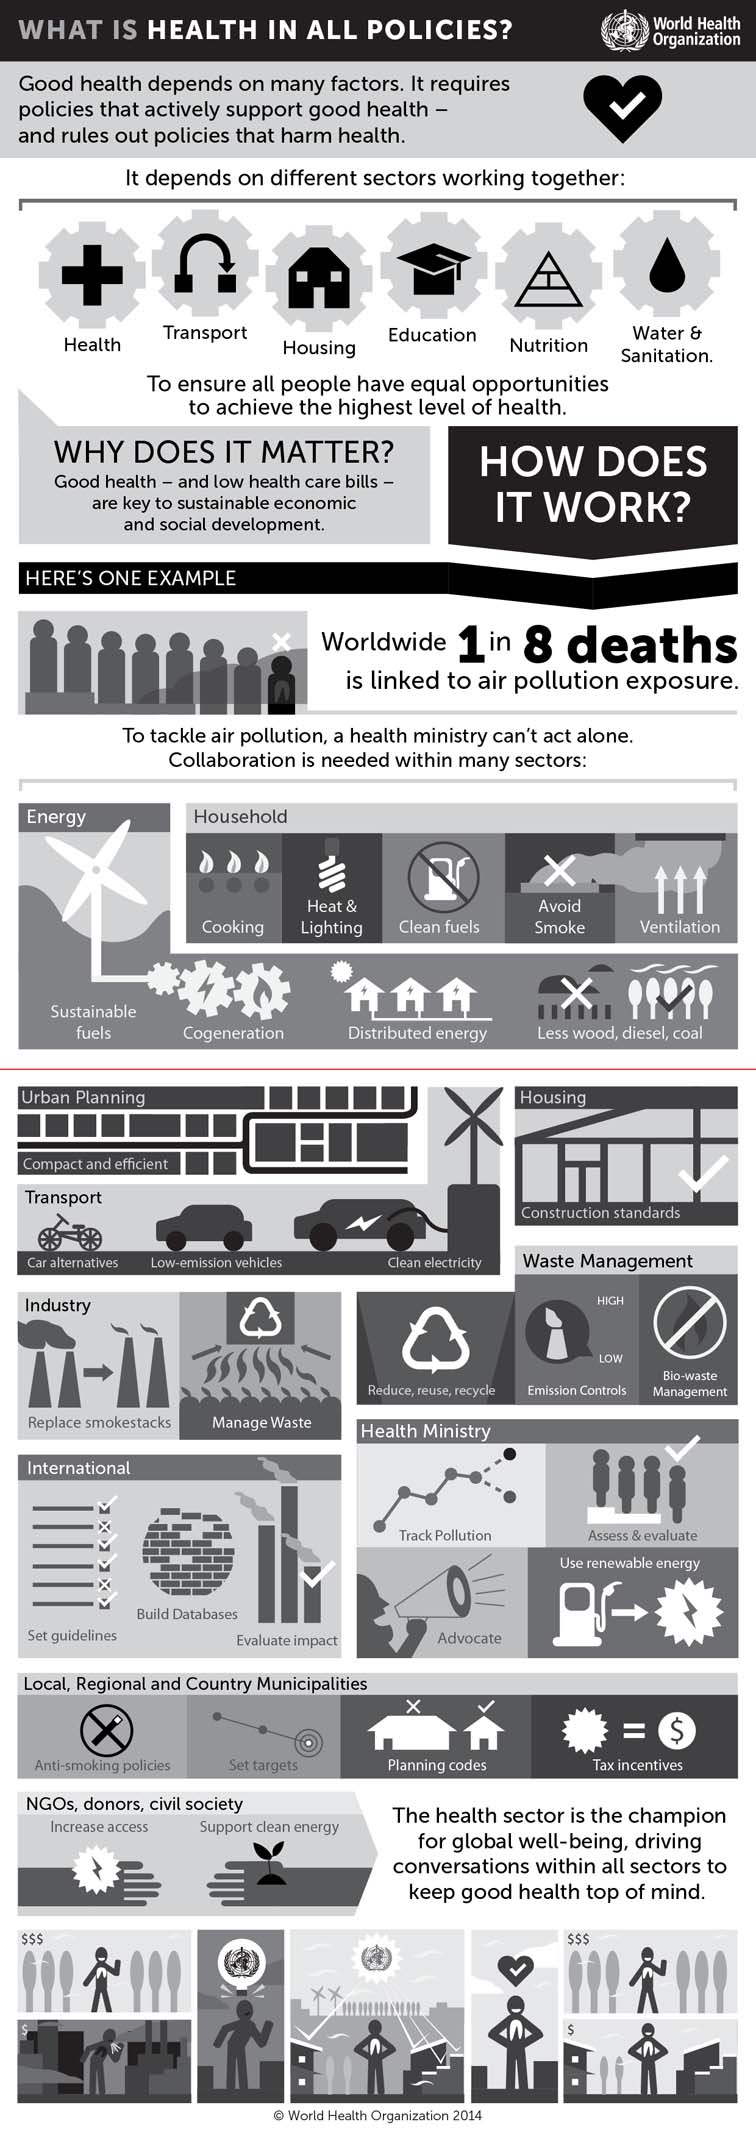 World Health Organization Health in All Policies Infographic 7367